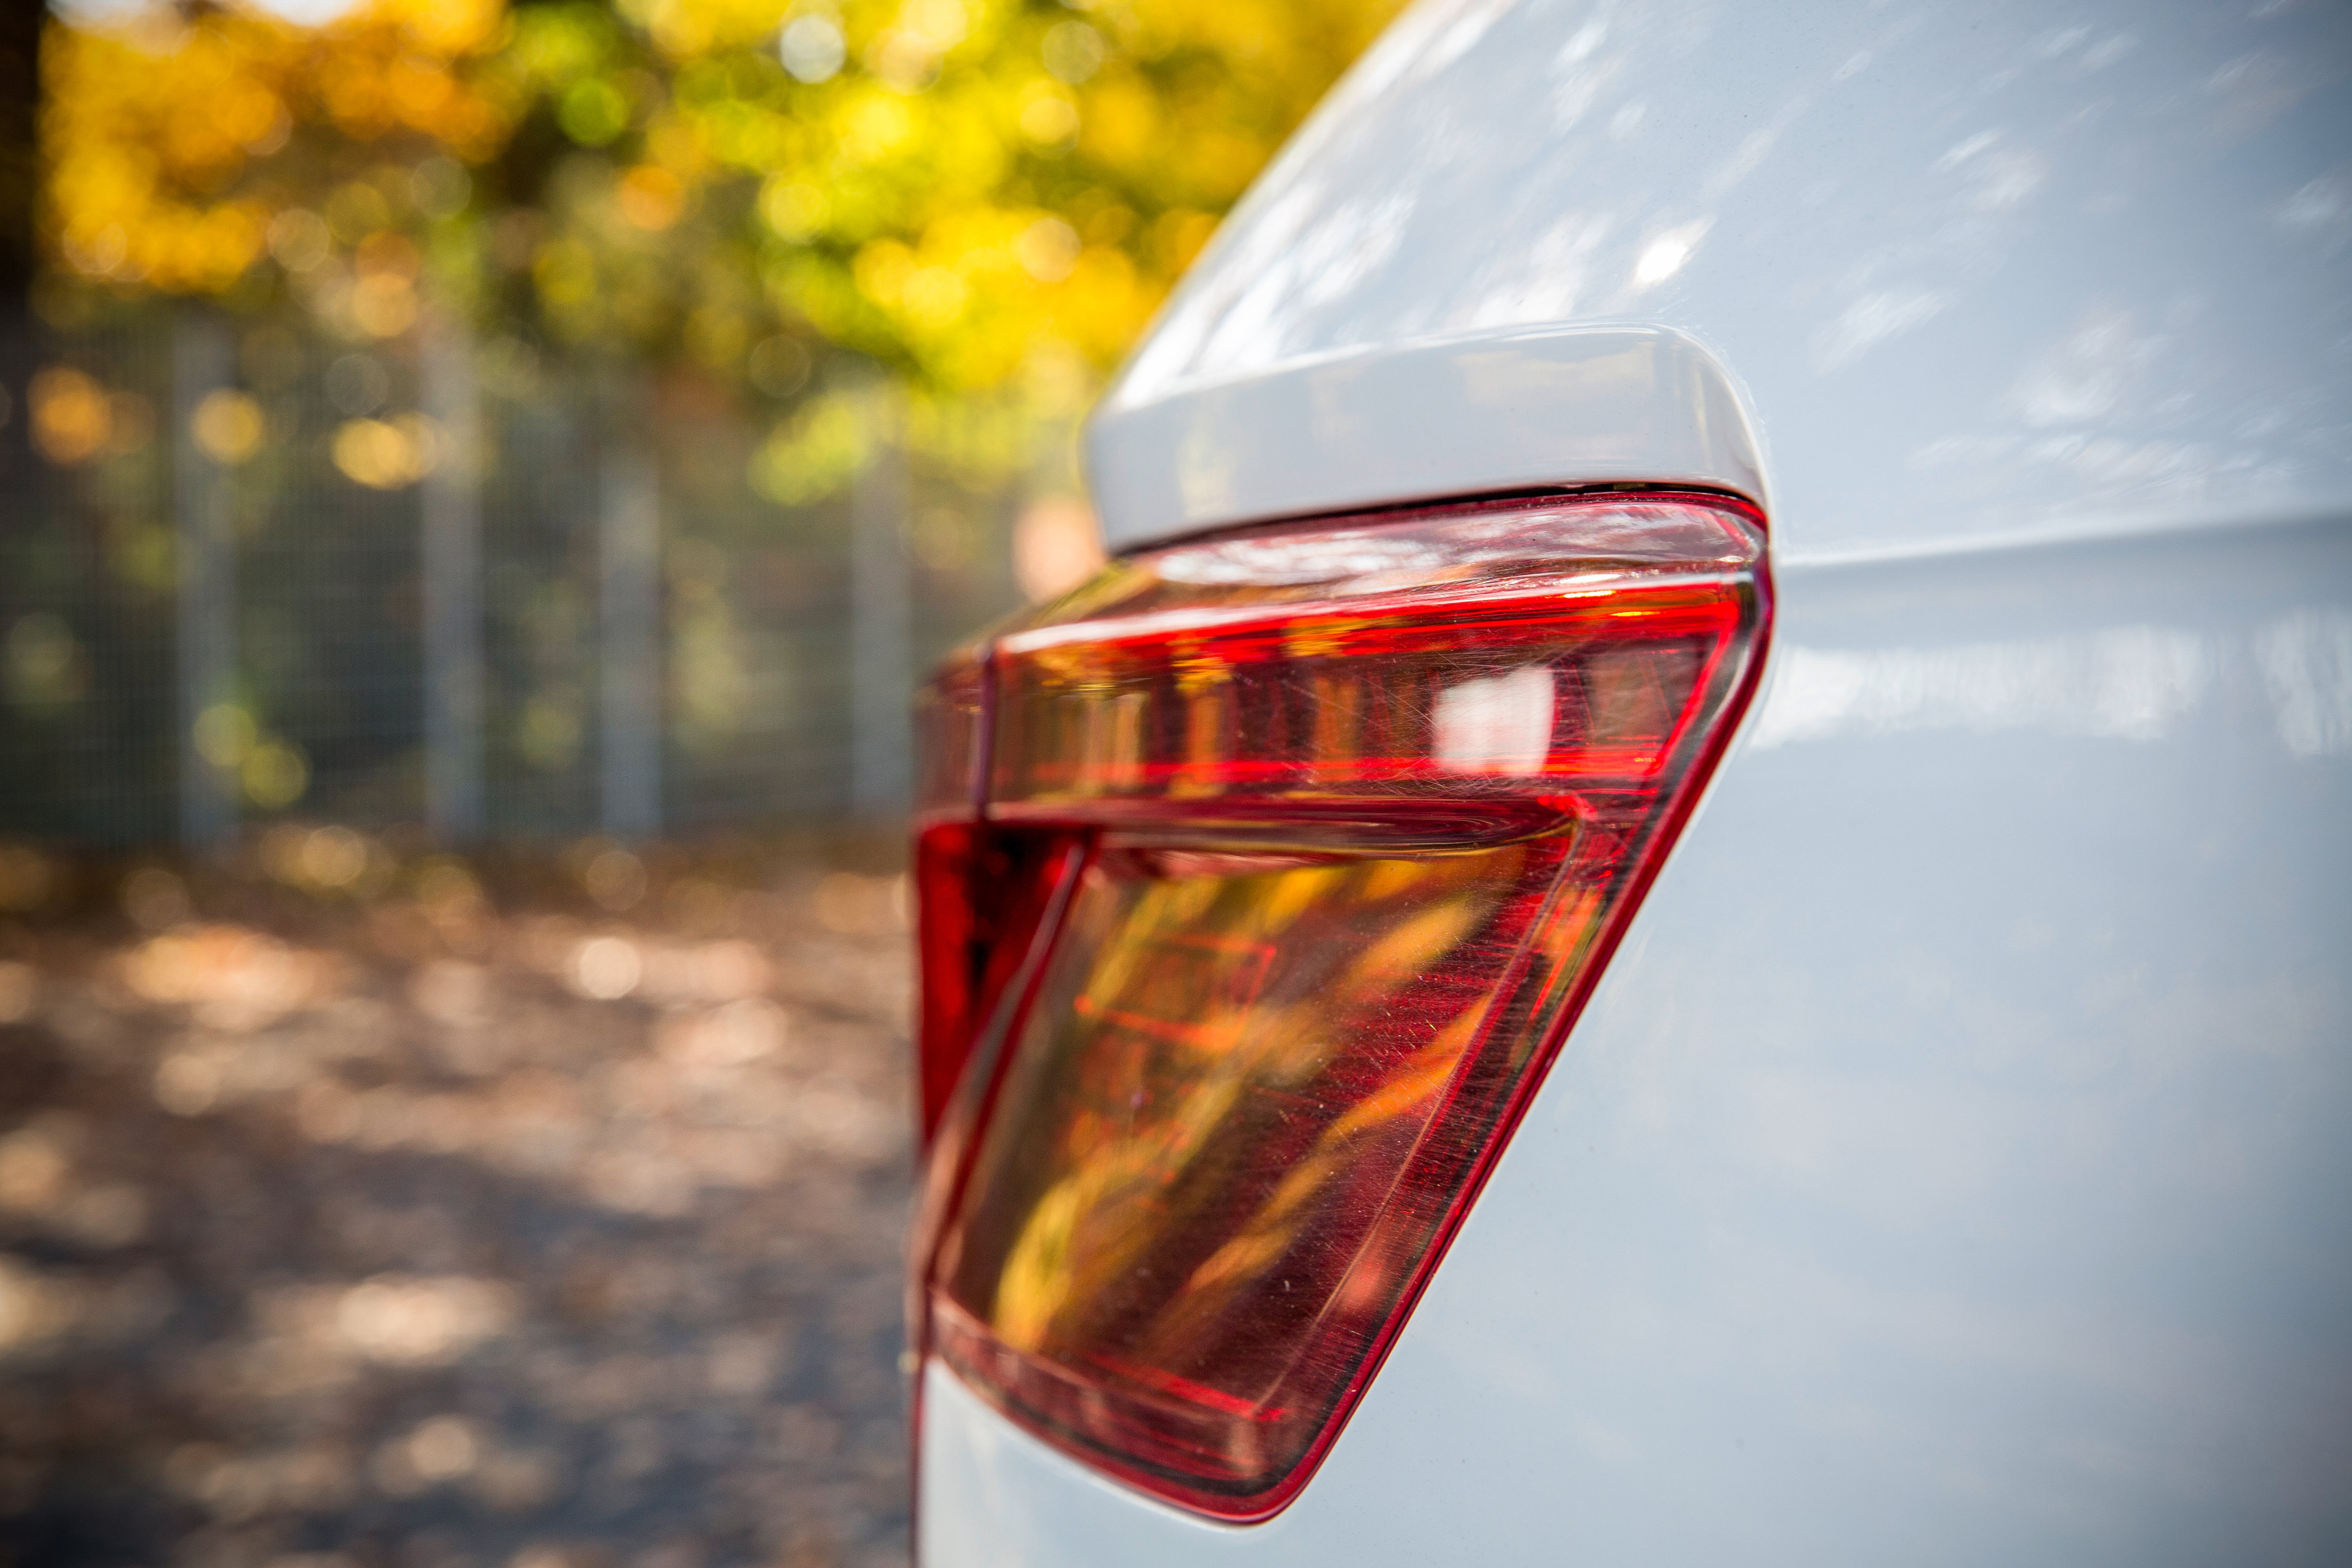 Person Showing Taillight